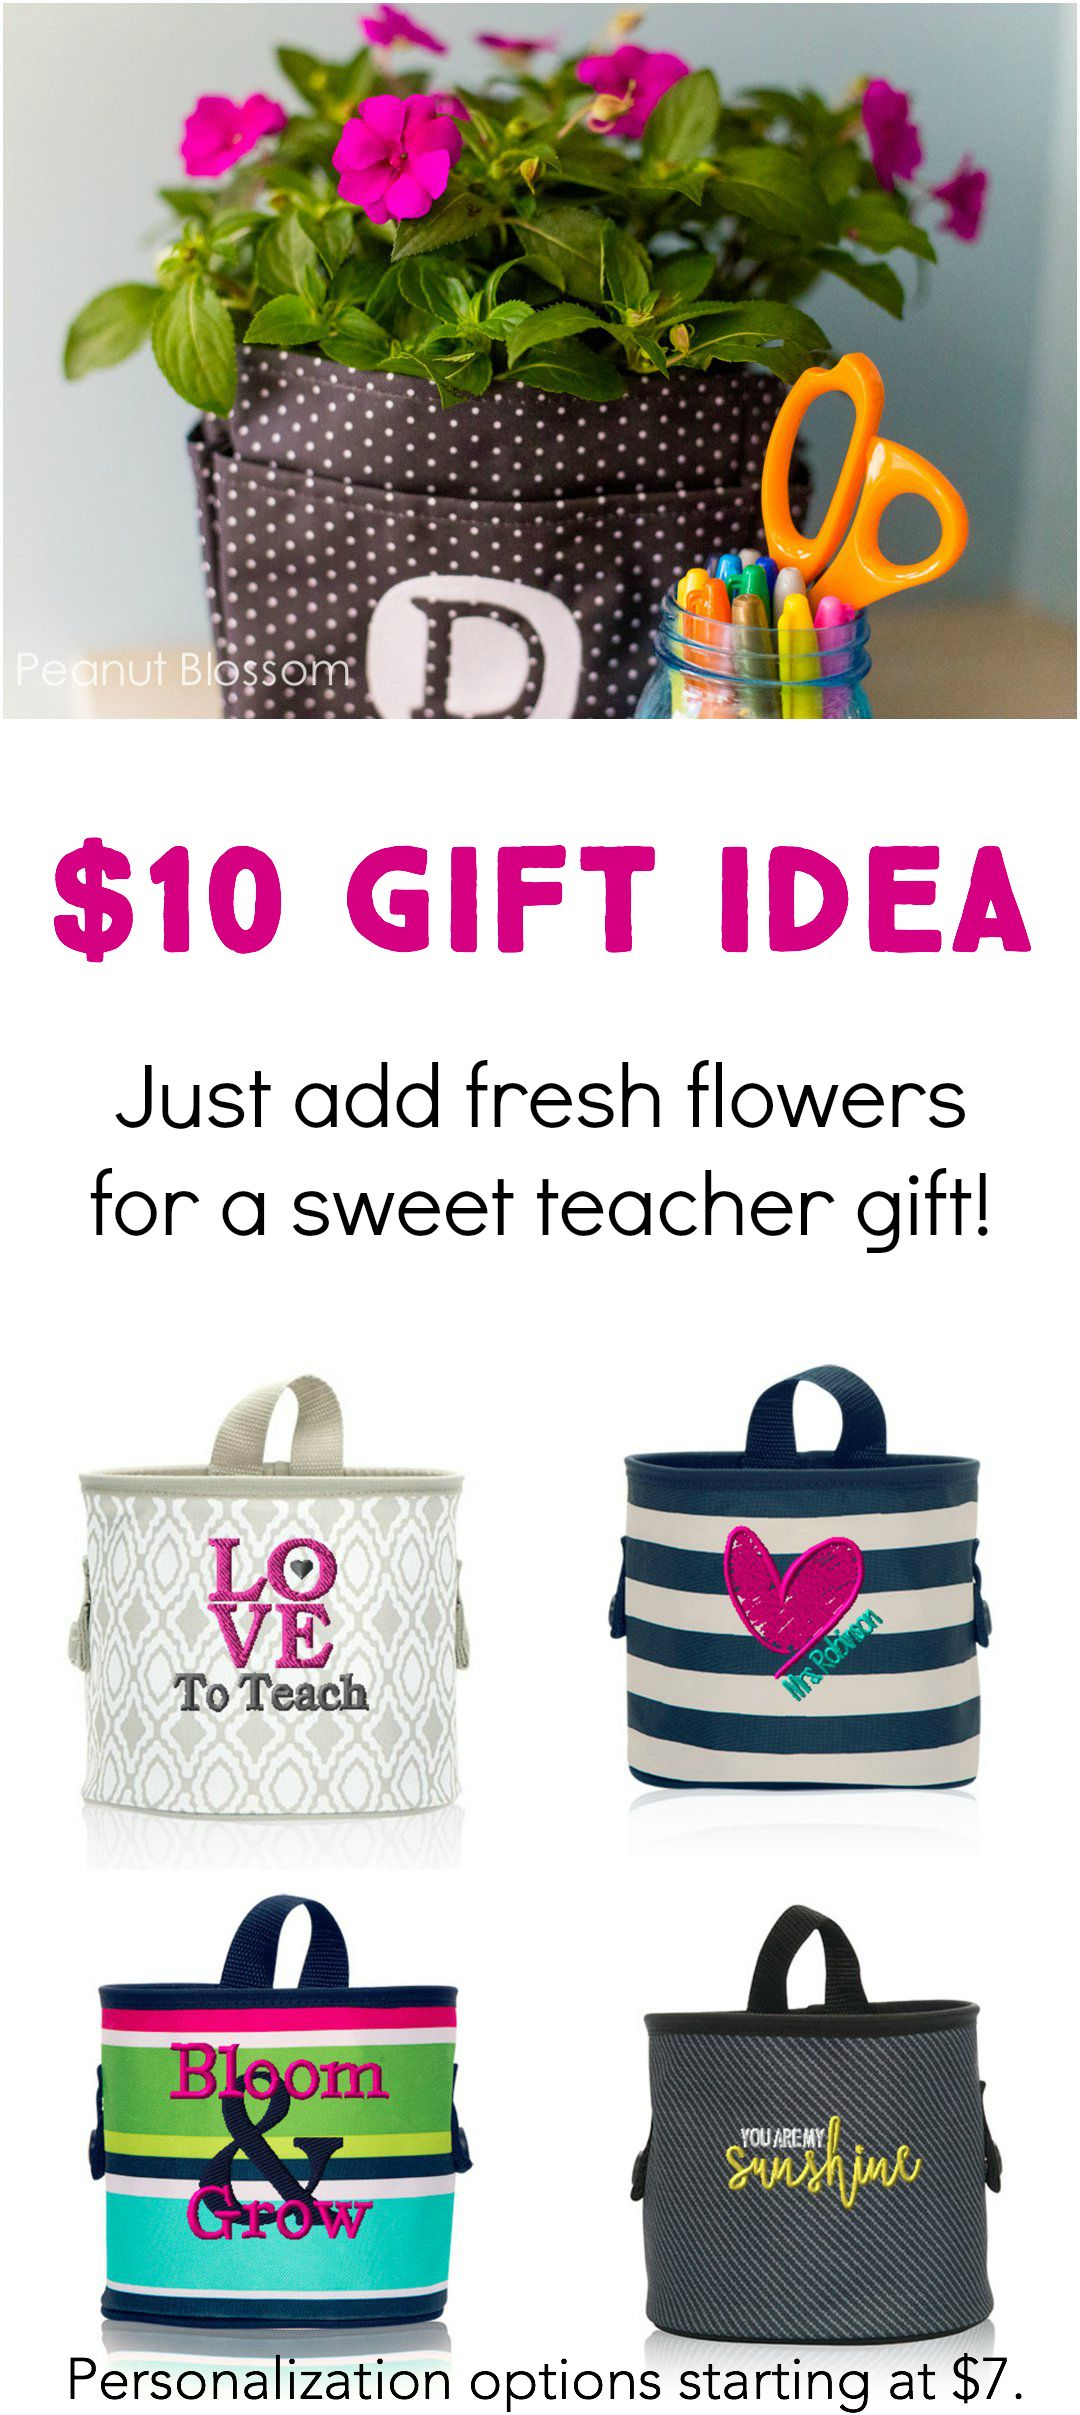 4 Year Boy Bedroom Decorating Ideas: $10 Teacher Gift Idea That Is Sure To Make Her Smile